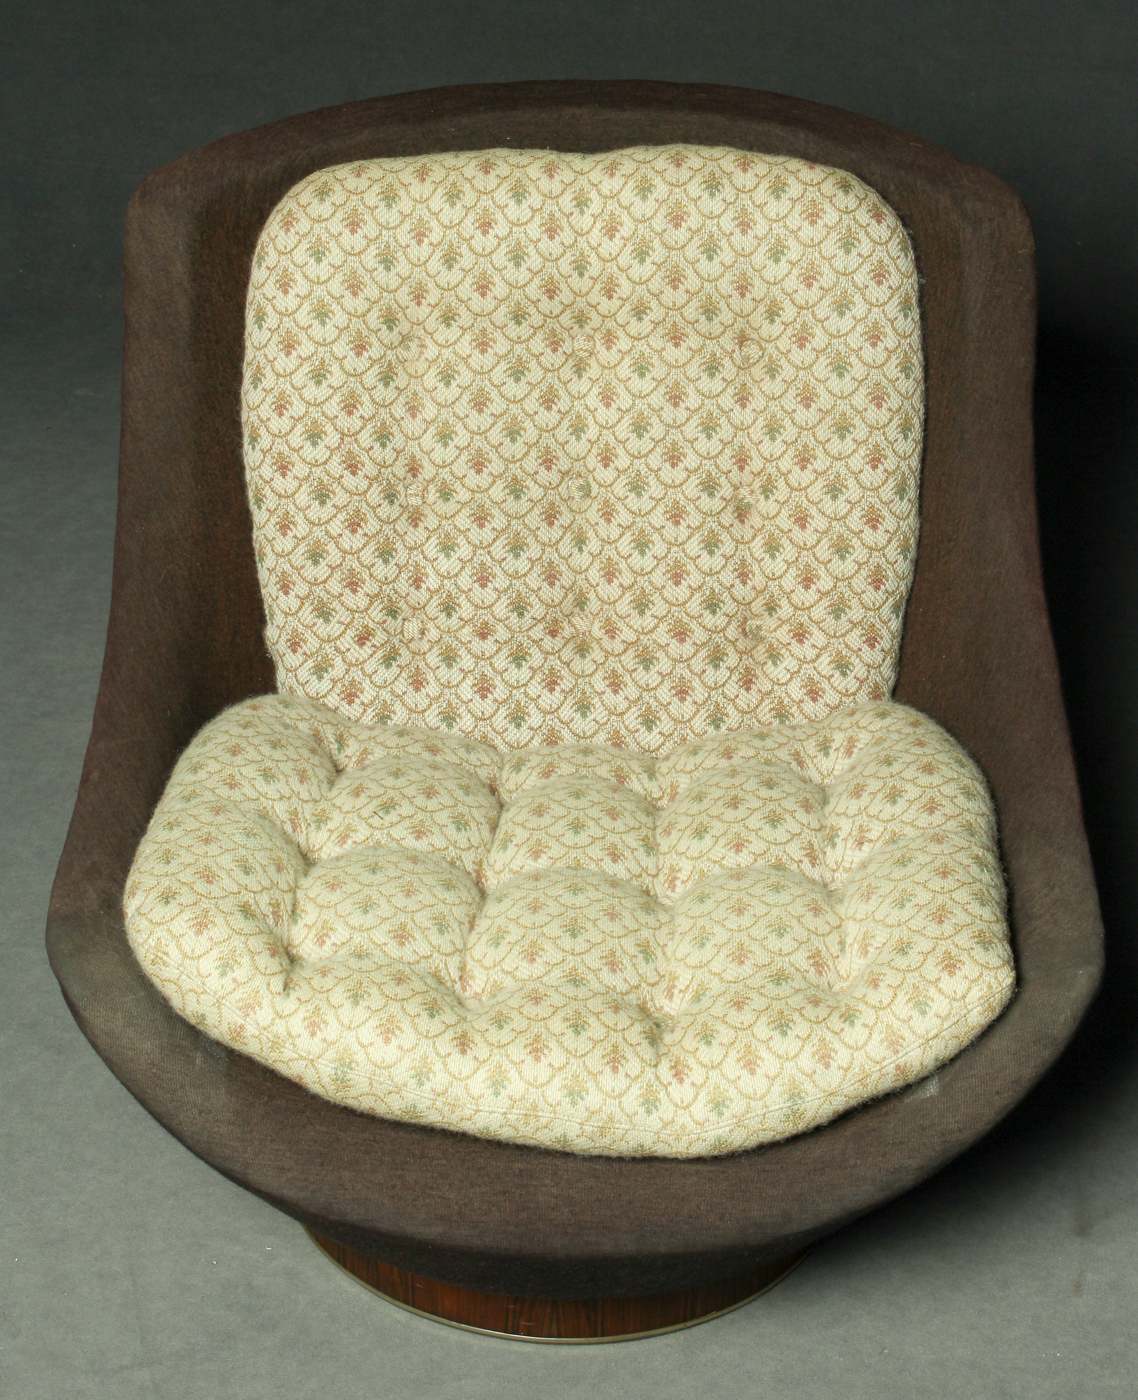 Click here to see a larger picture & A swivel chair by Seng Chicago 1950 - 1960 | Lauritz.com